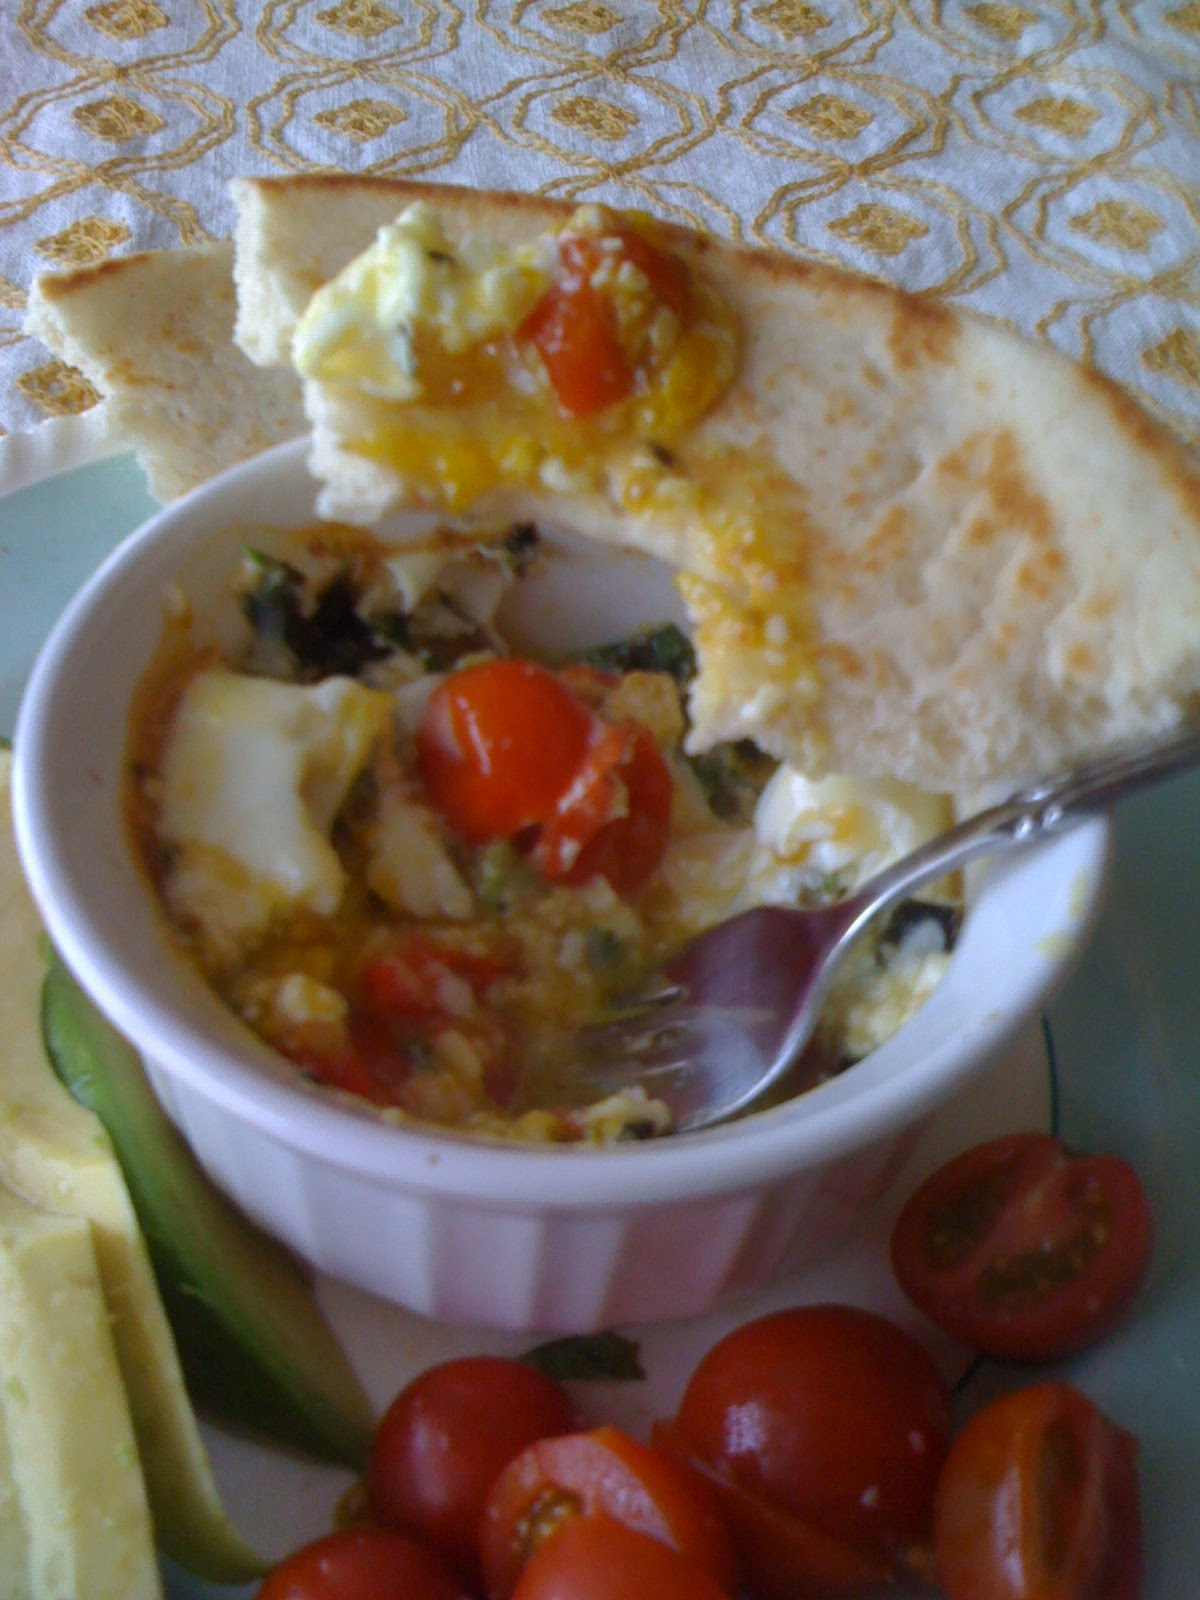 Fish and Veggies: Baked Eggs with Tomatoes, Basil and Feta Cheese